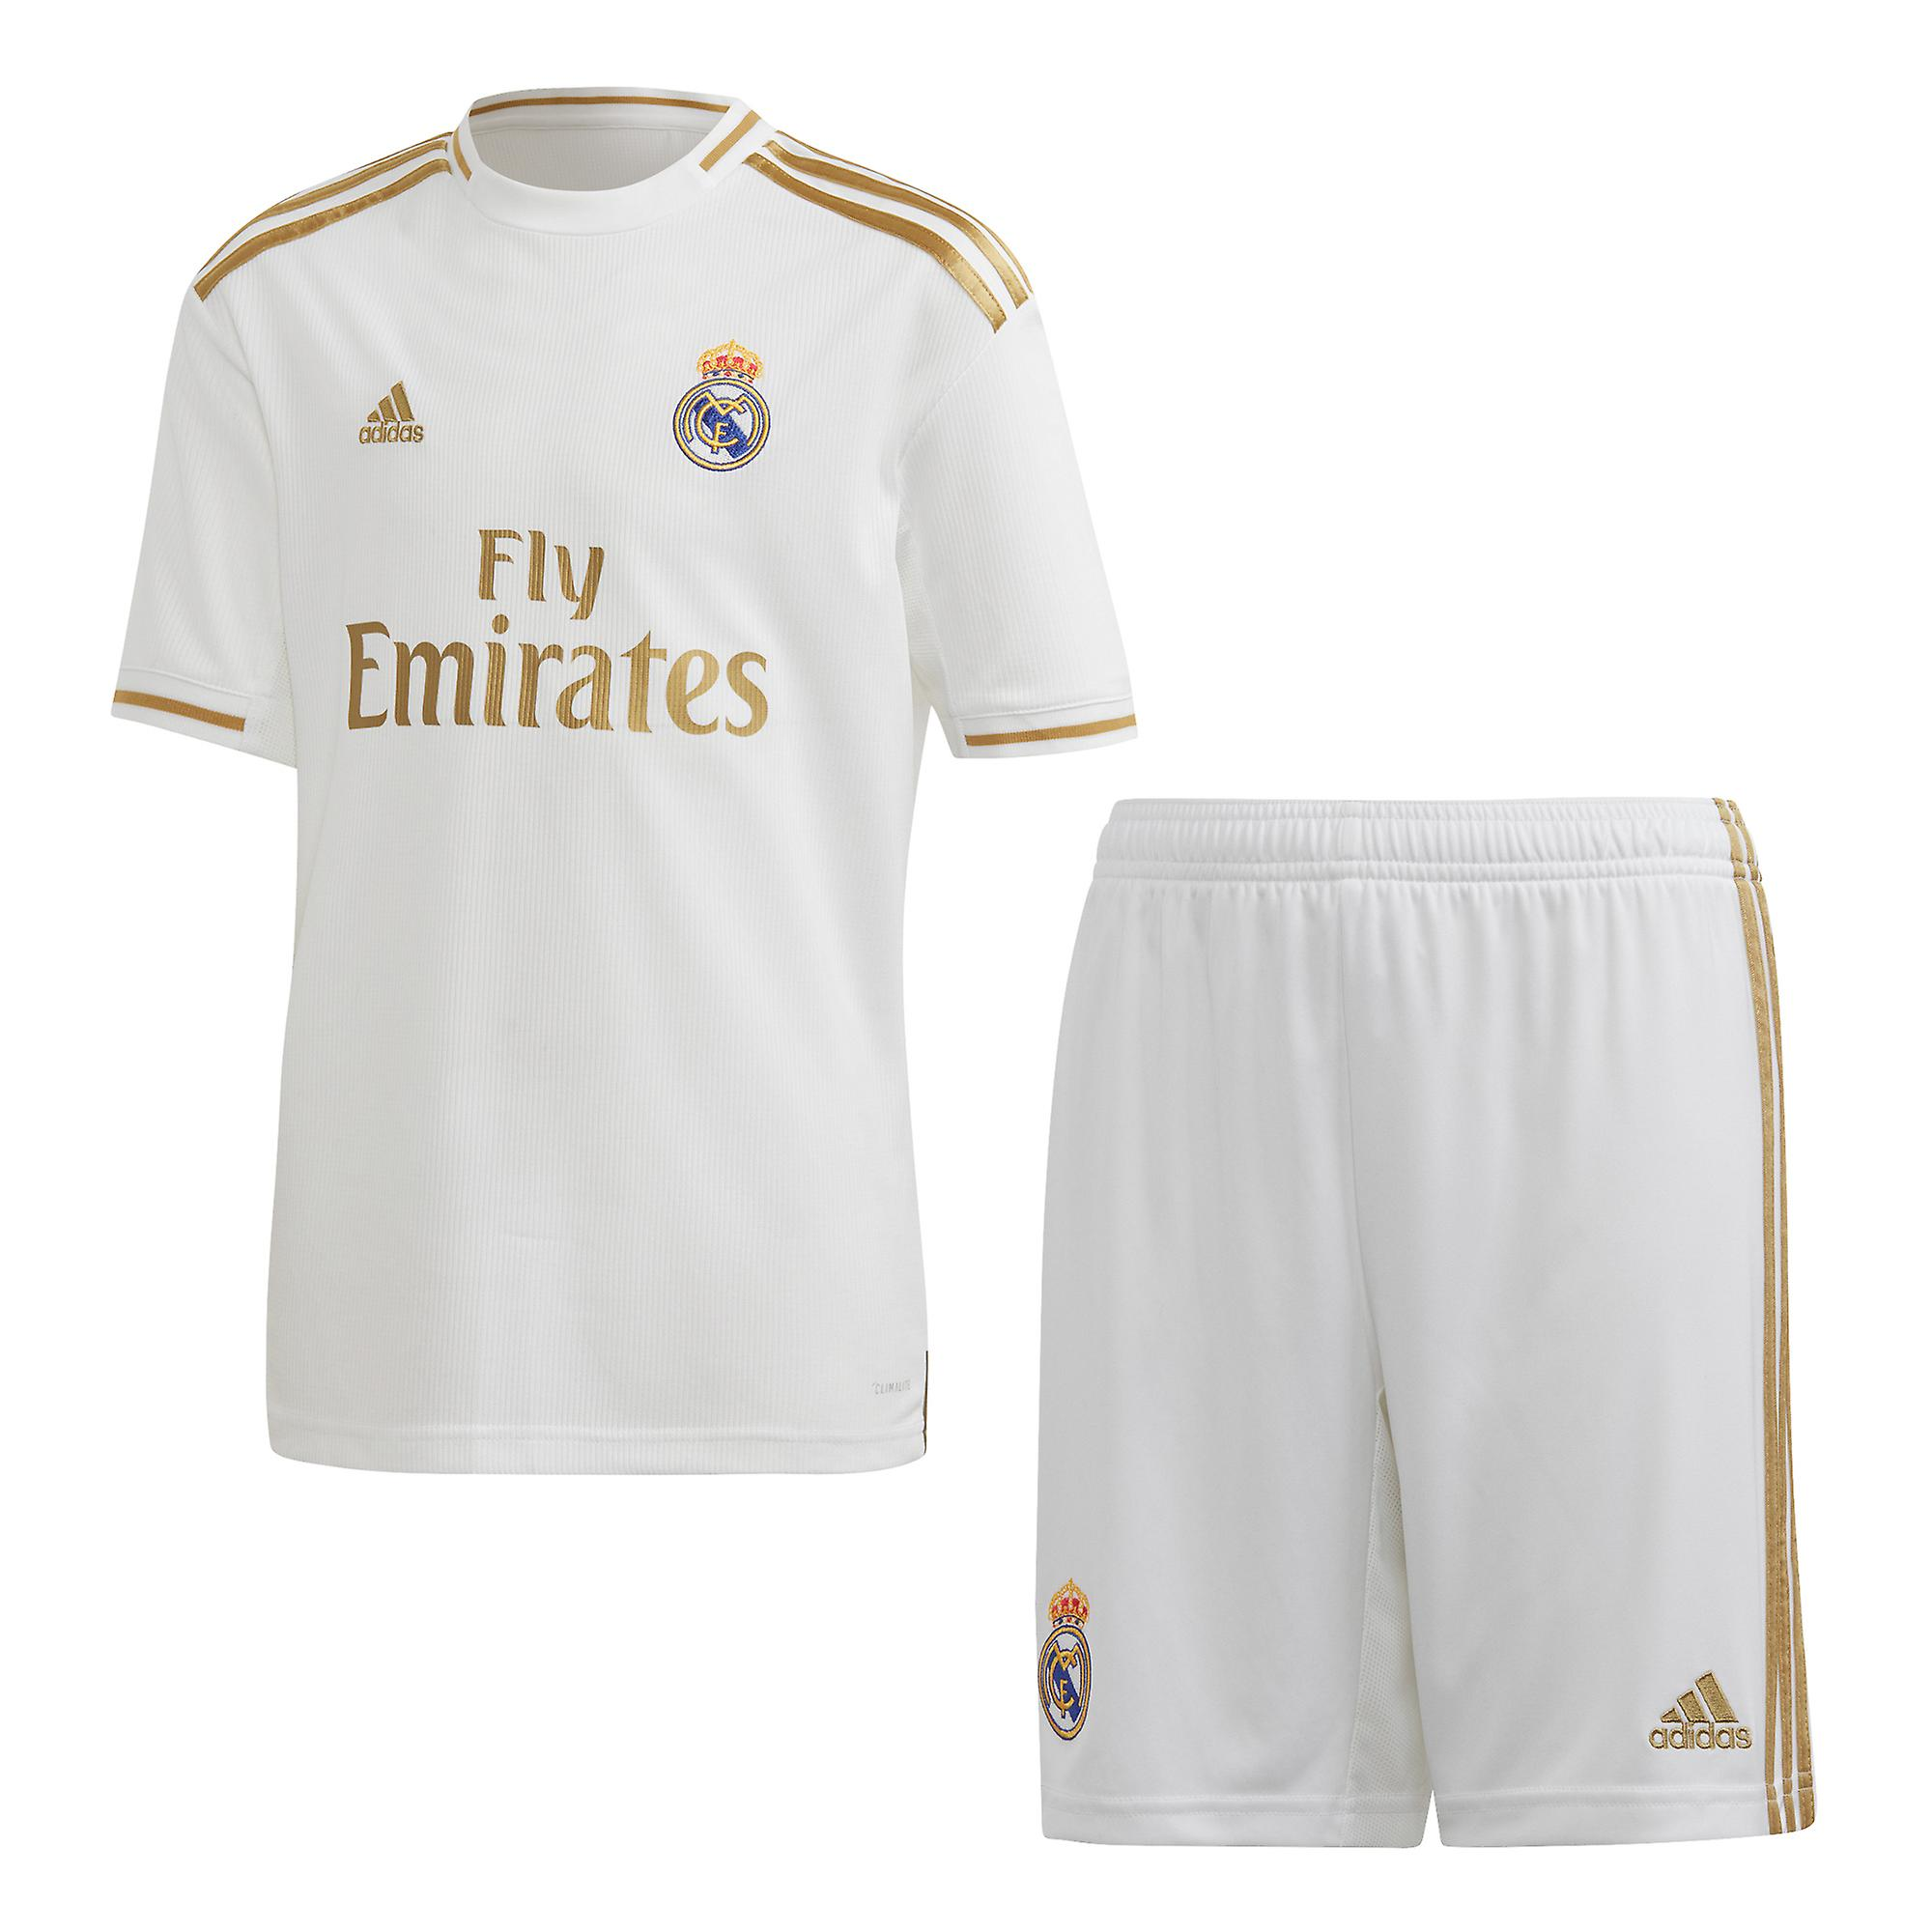 huge selection of 2f7c5 8d4e8 adidas Real Madrid 2019/20 Kids Football Home Kit Set White/Gold